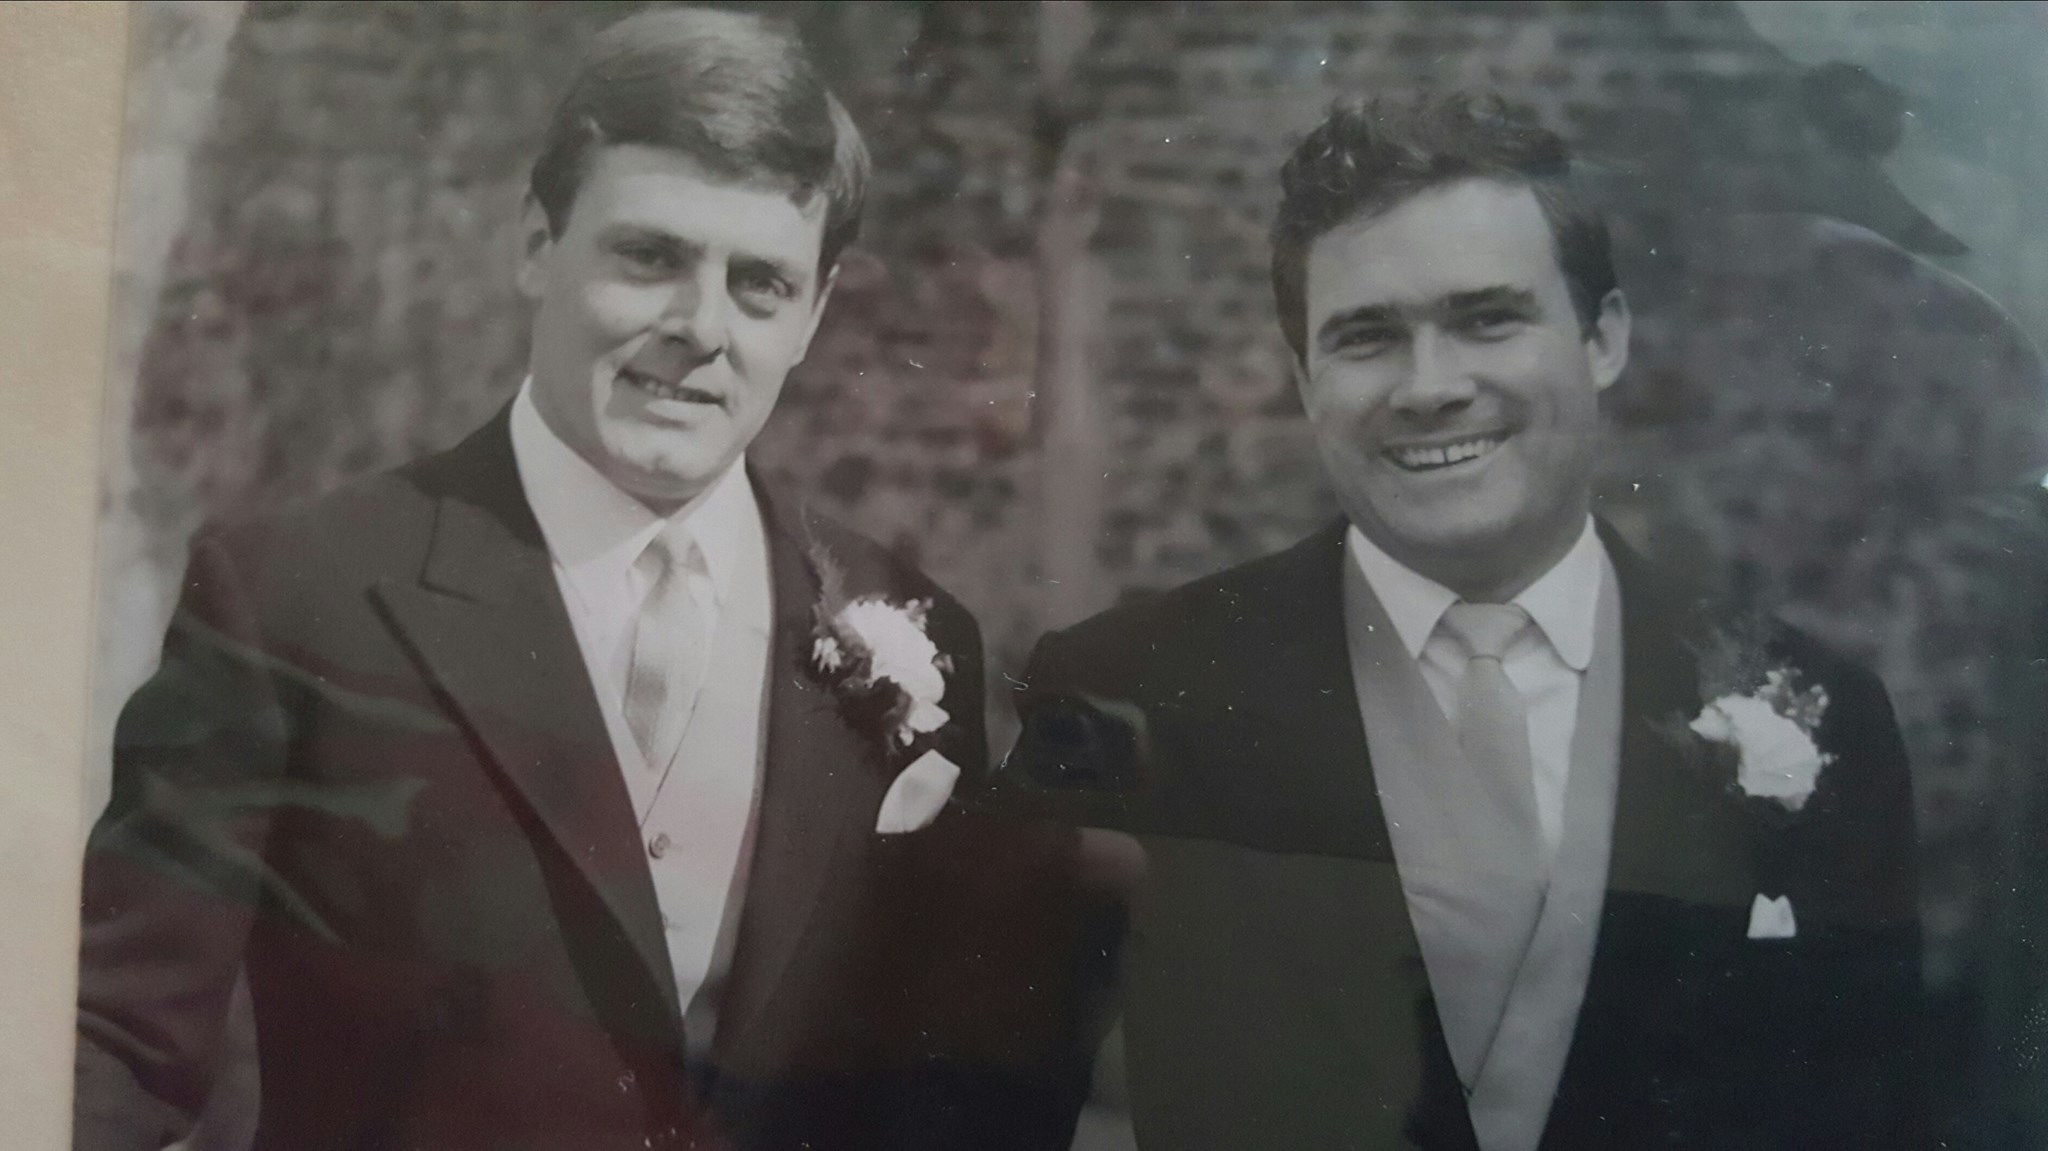 John & Heather Rowe's Wedding day with dad as best man 31st March 1966